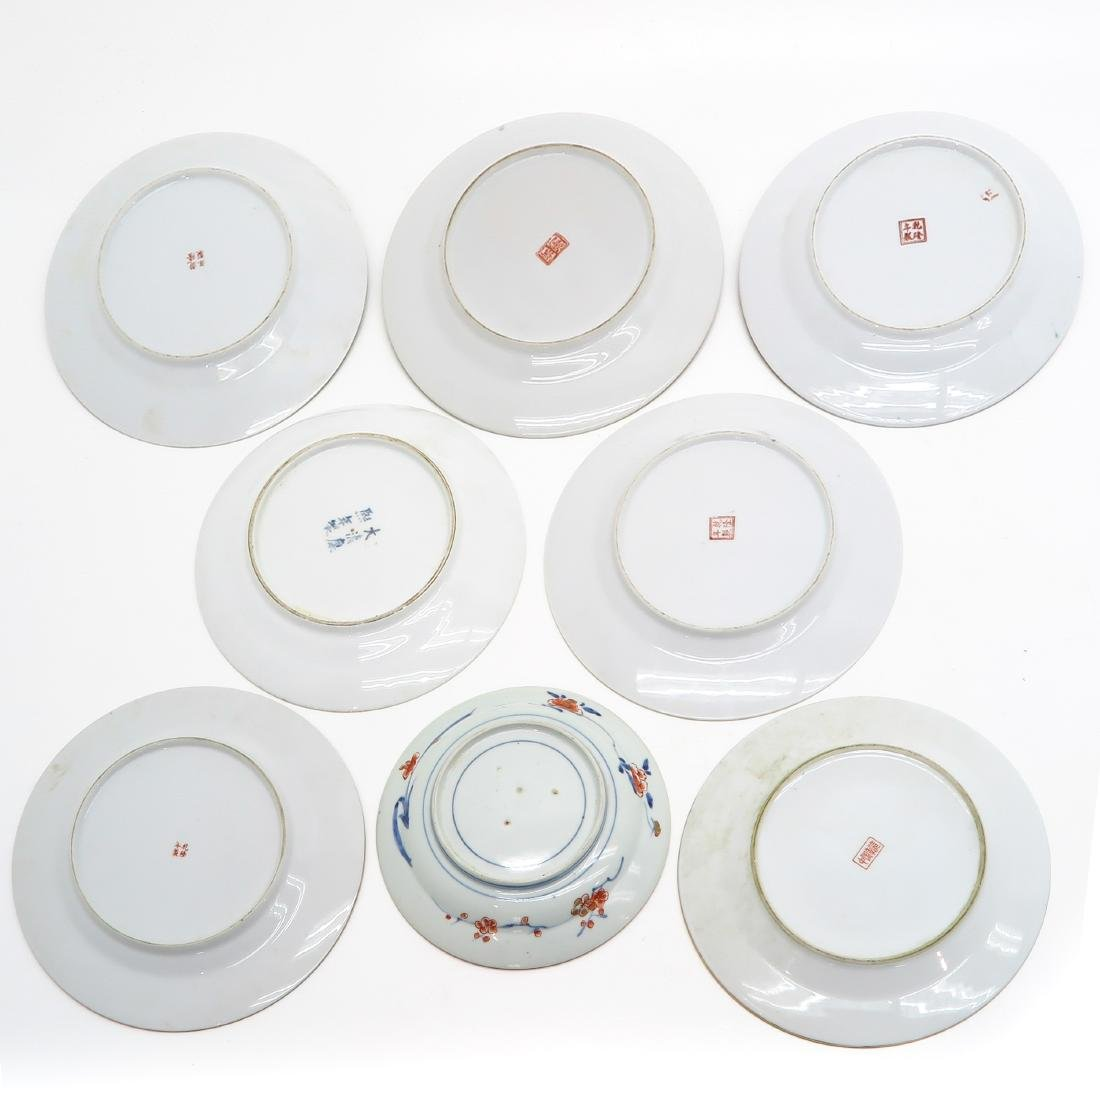 A Diverse Lot of 8 Plates - 2